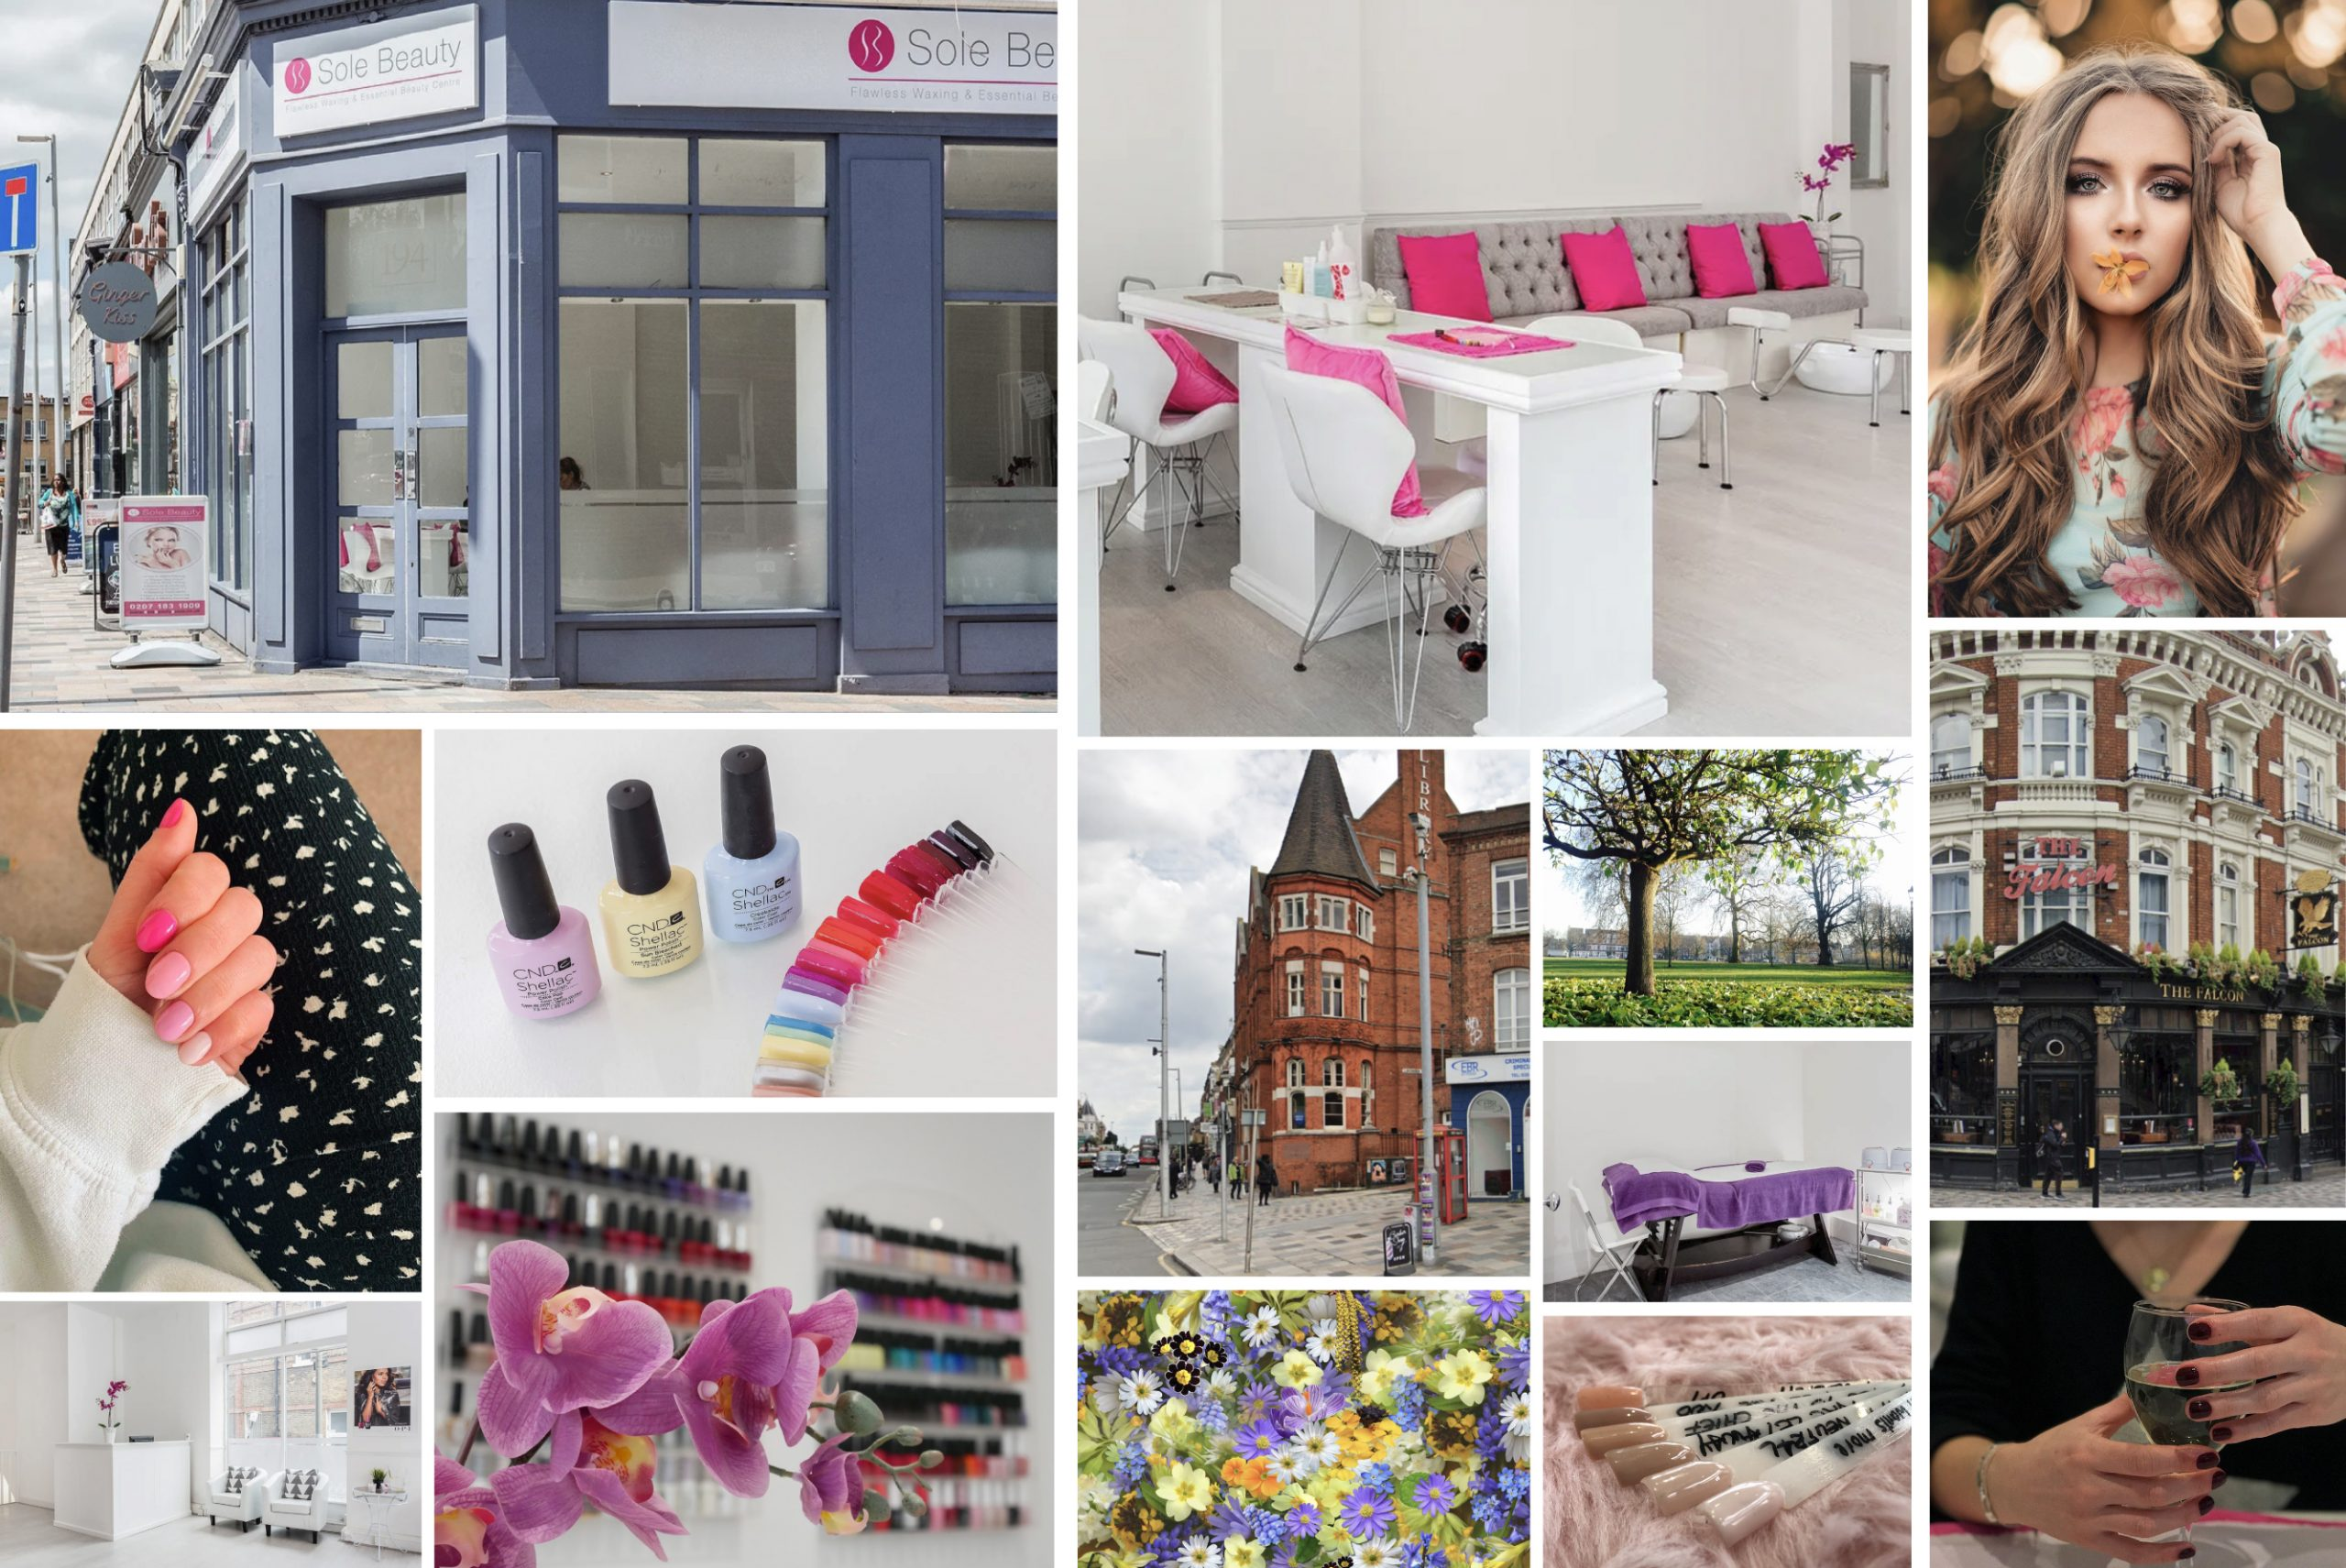 Pictures from Sole Beauty Clapham Salon